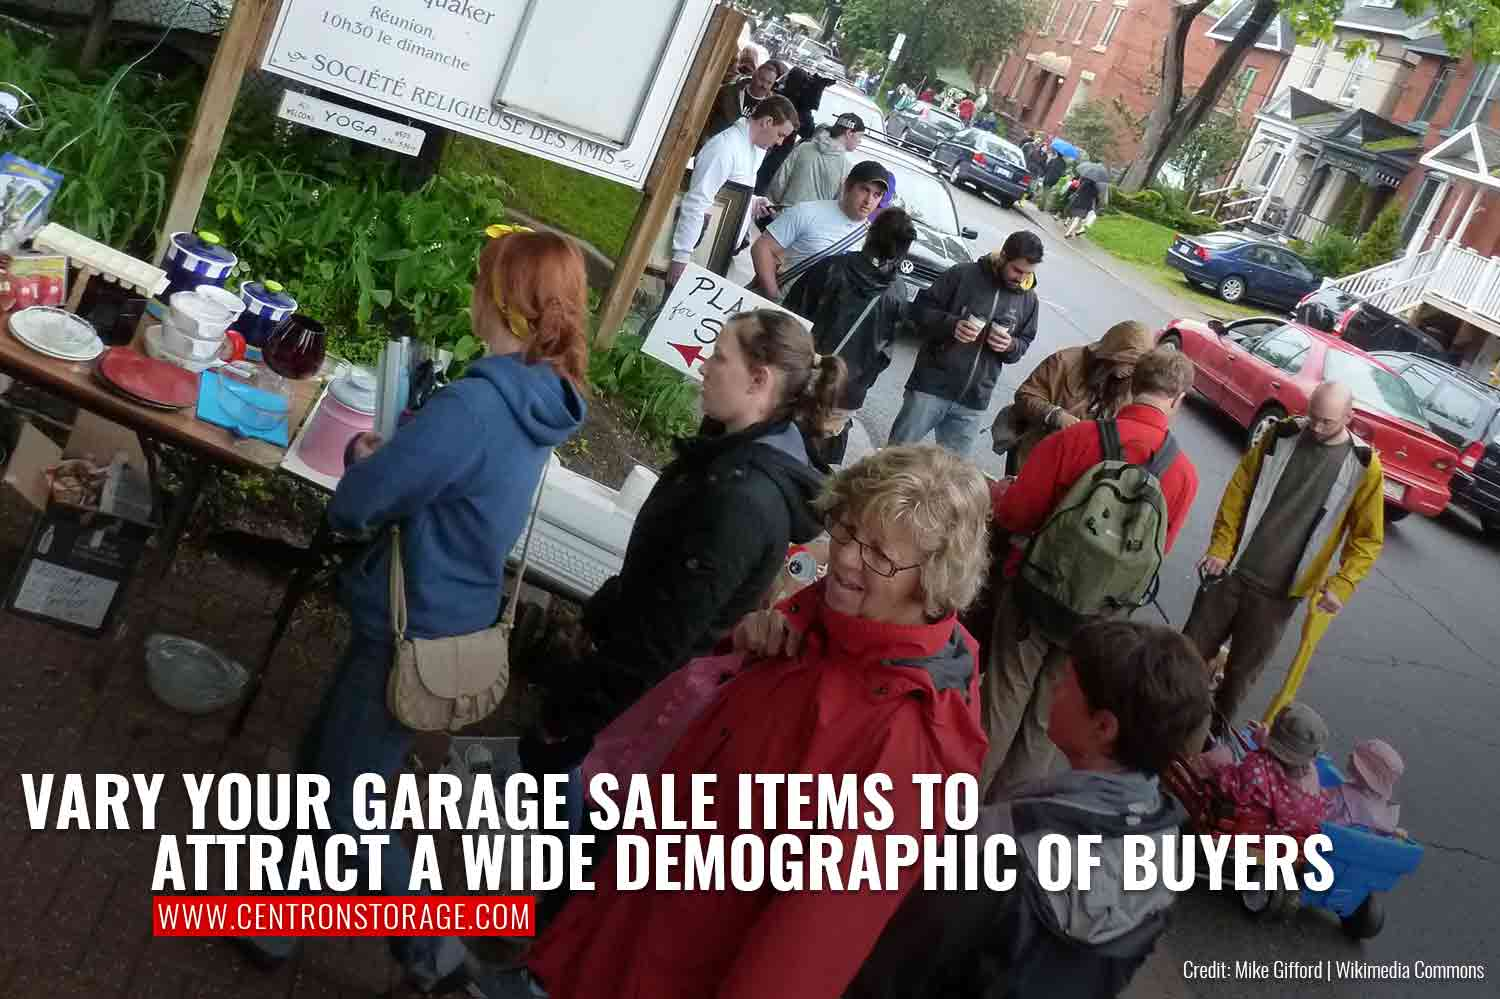 Vary your garage sale items to attract a wide demographic of buyers